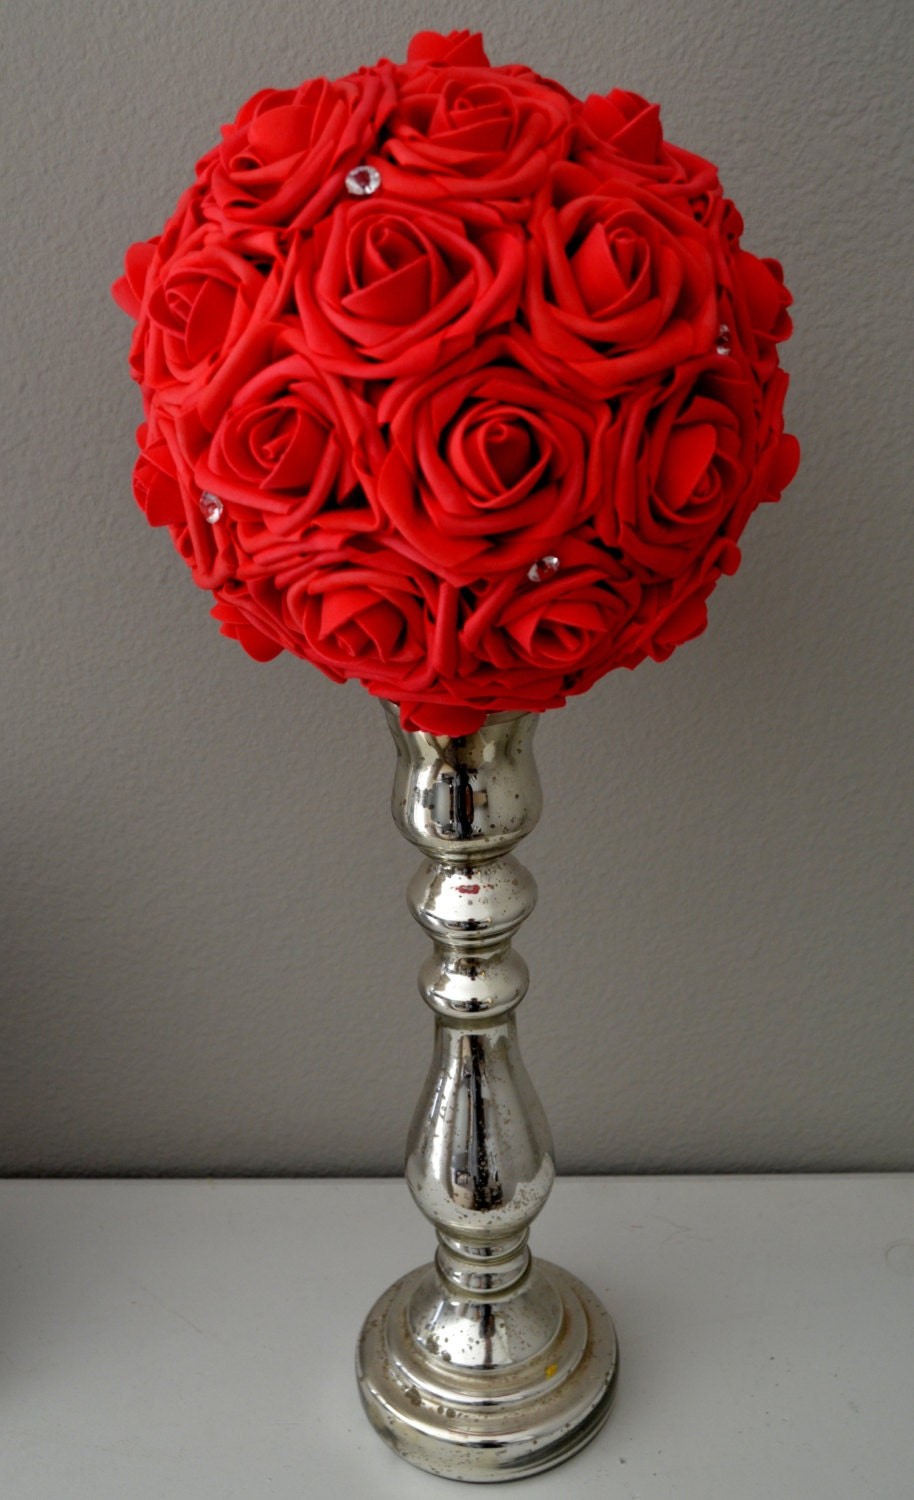 Red flower ball with bling wedding centerpiece kissing